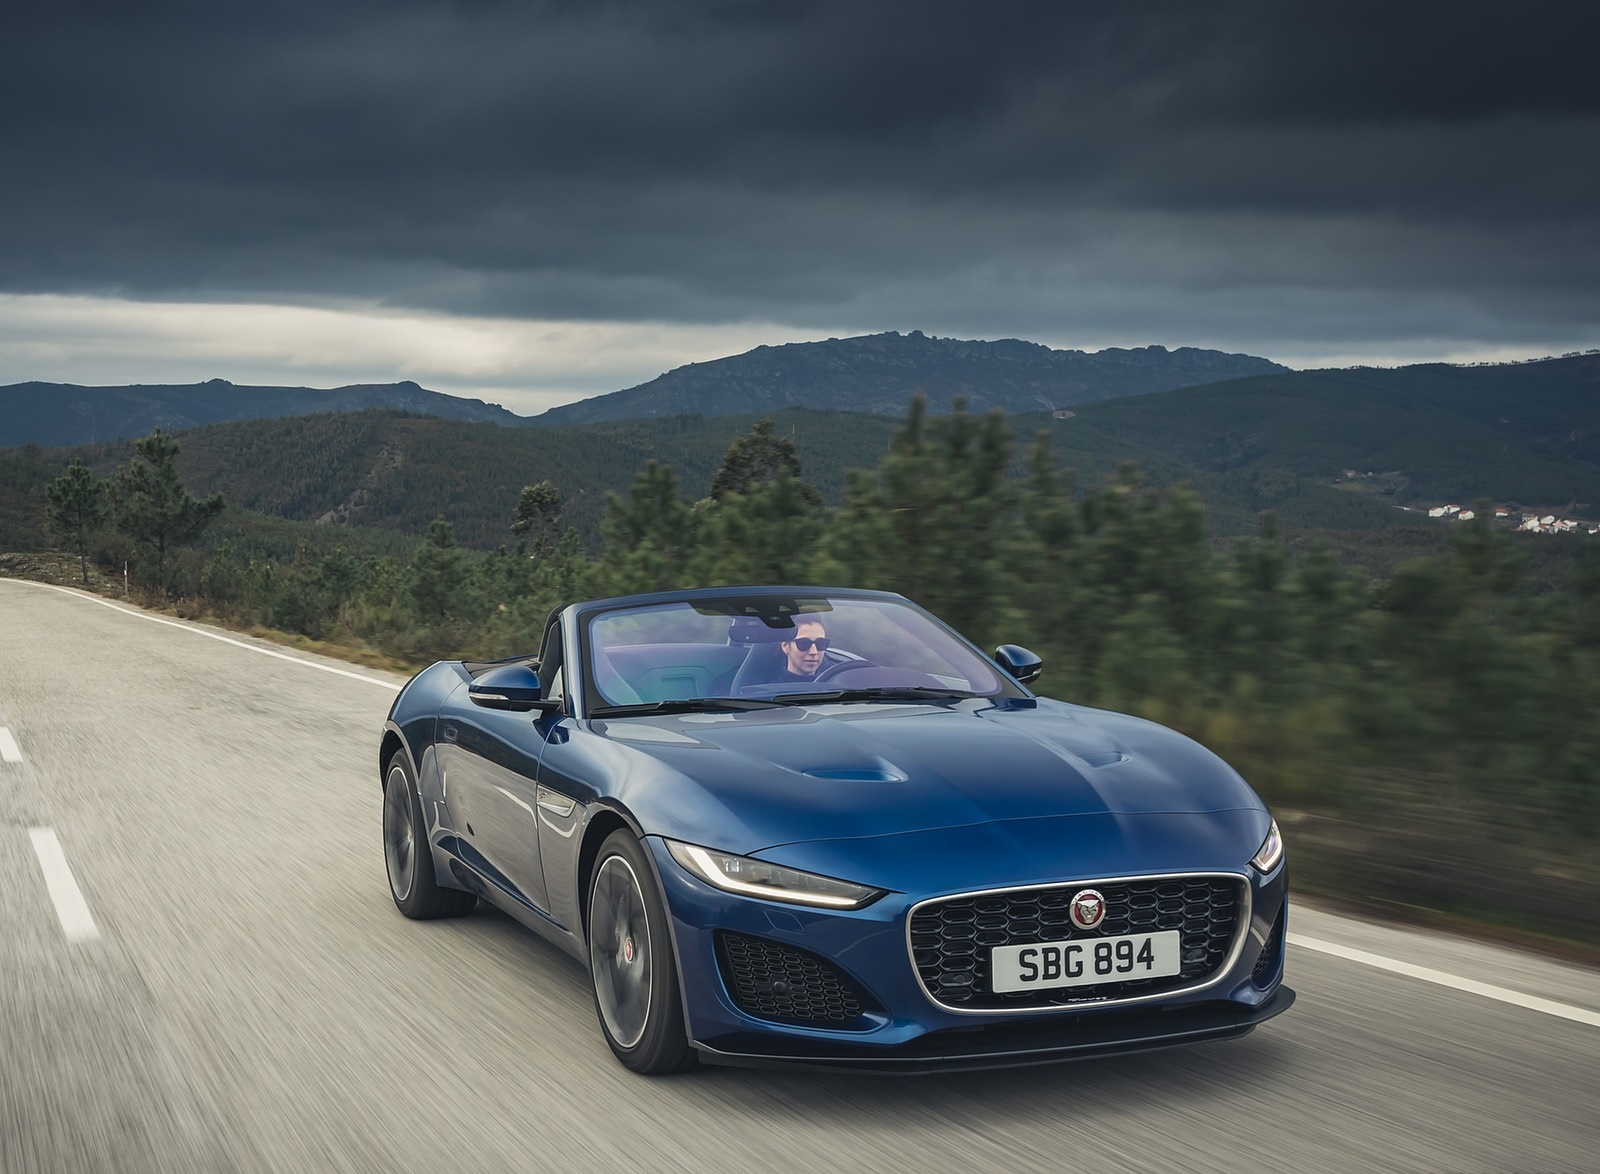 2021 Jaguar F-TYPE P300 Convertible RWD (Color: Bluefire) Front Three-Quarter Wallpapers (4)